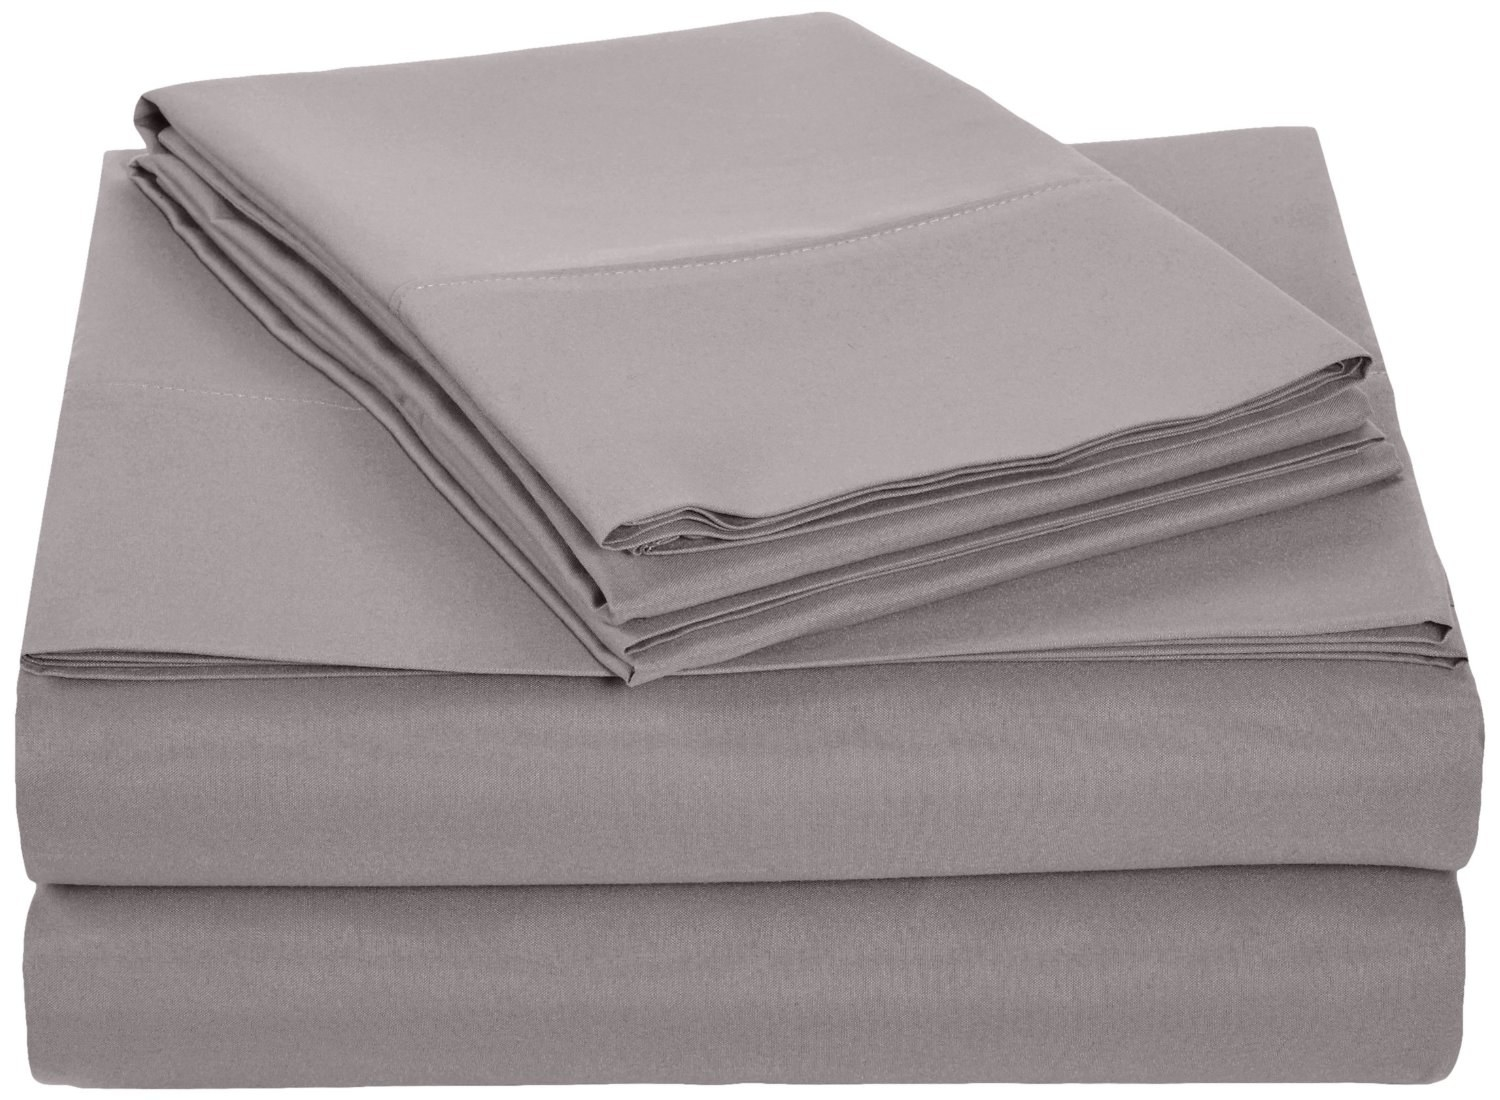 These AmazonBasics Microfiber Sheet Sets That Feel The Way Nutella Tastes.